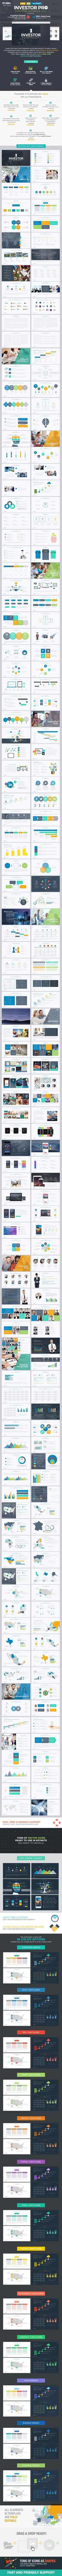 Investor Pitch Deck PowerPoint Template - Pitch Deck PowerPoint Templates Download here: https://graphicriver.net/item/investor-pitch-deck-powerpoint-template/12751697?ref=Classicdesignp